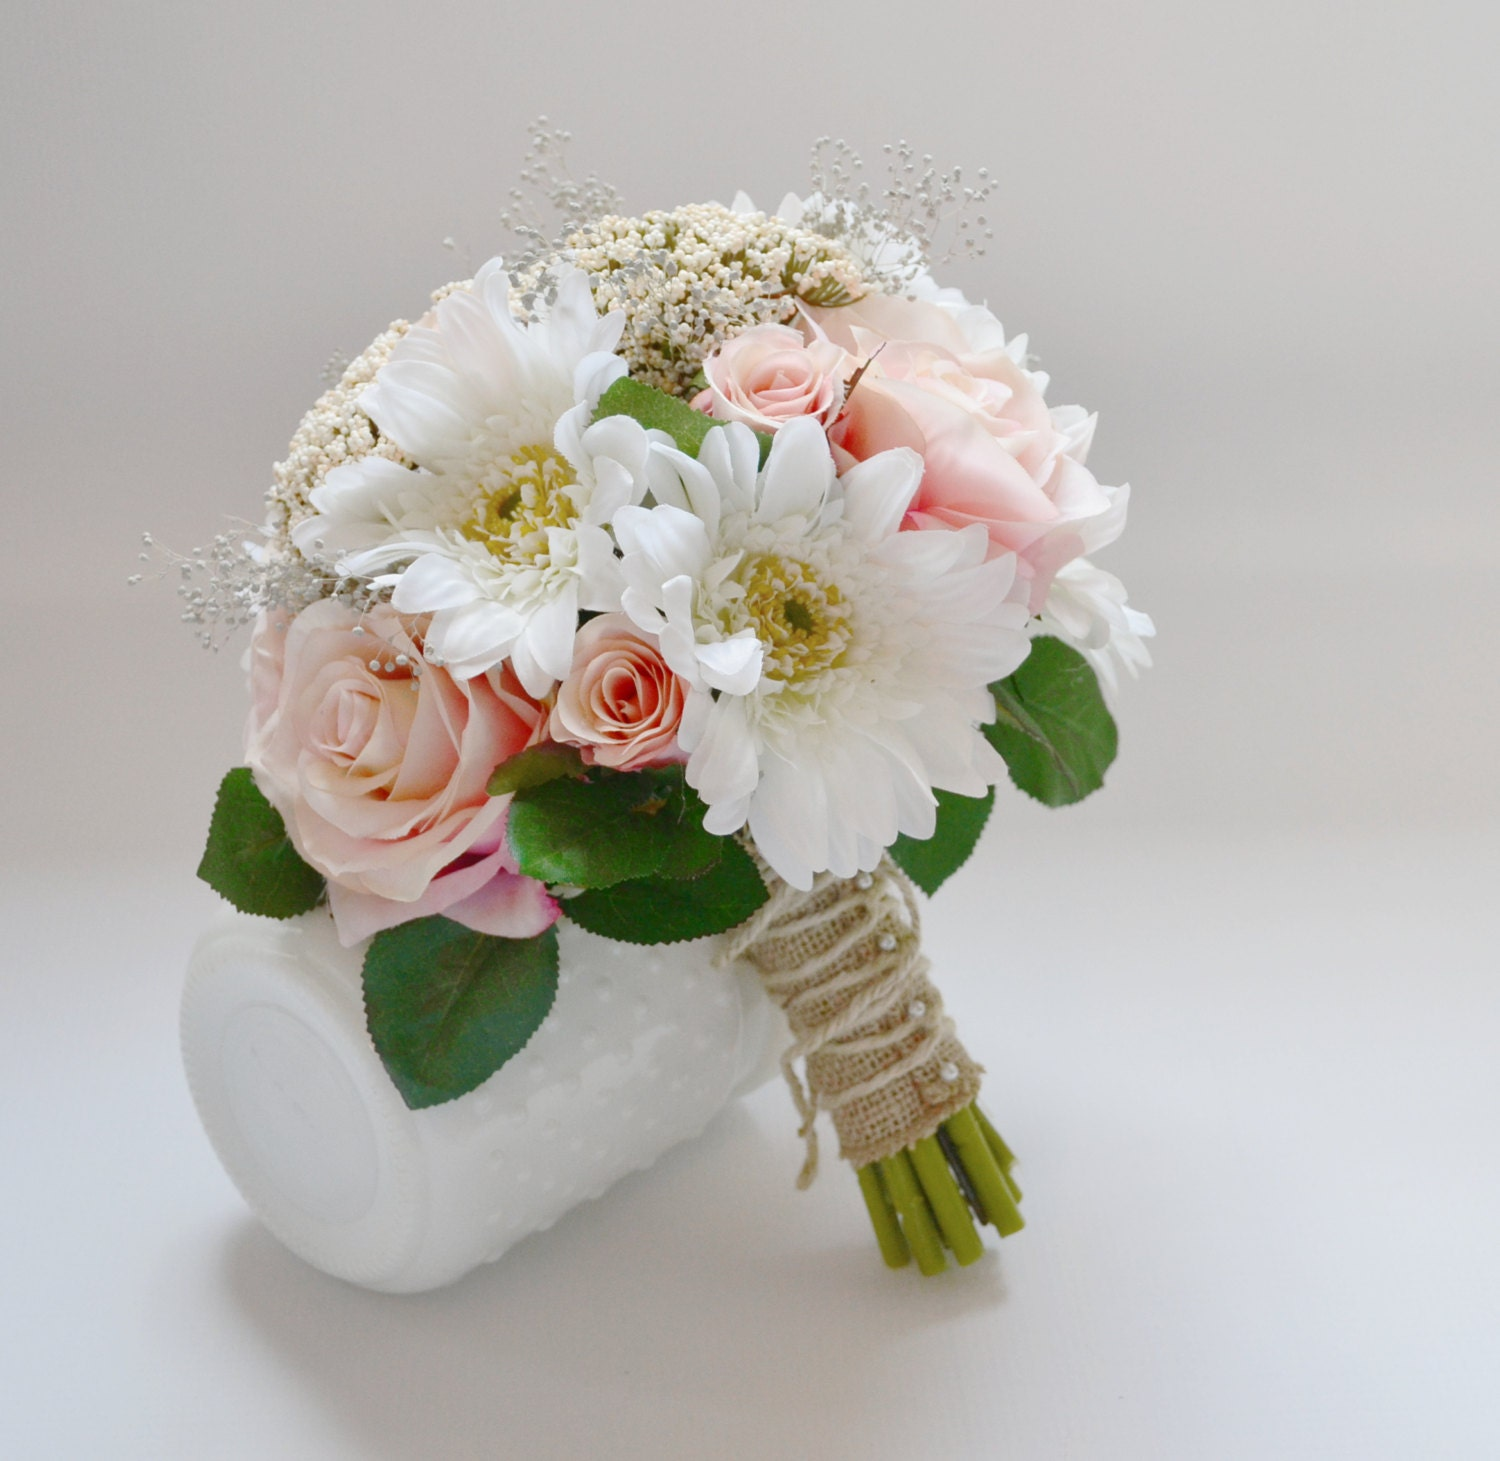 Wedding Bouquet Pink Roses Green Berries Leaves White Etsy